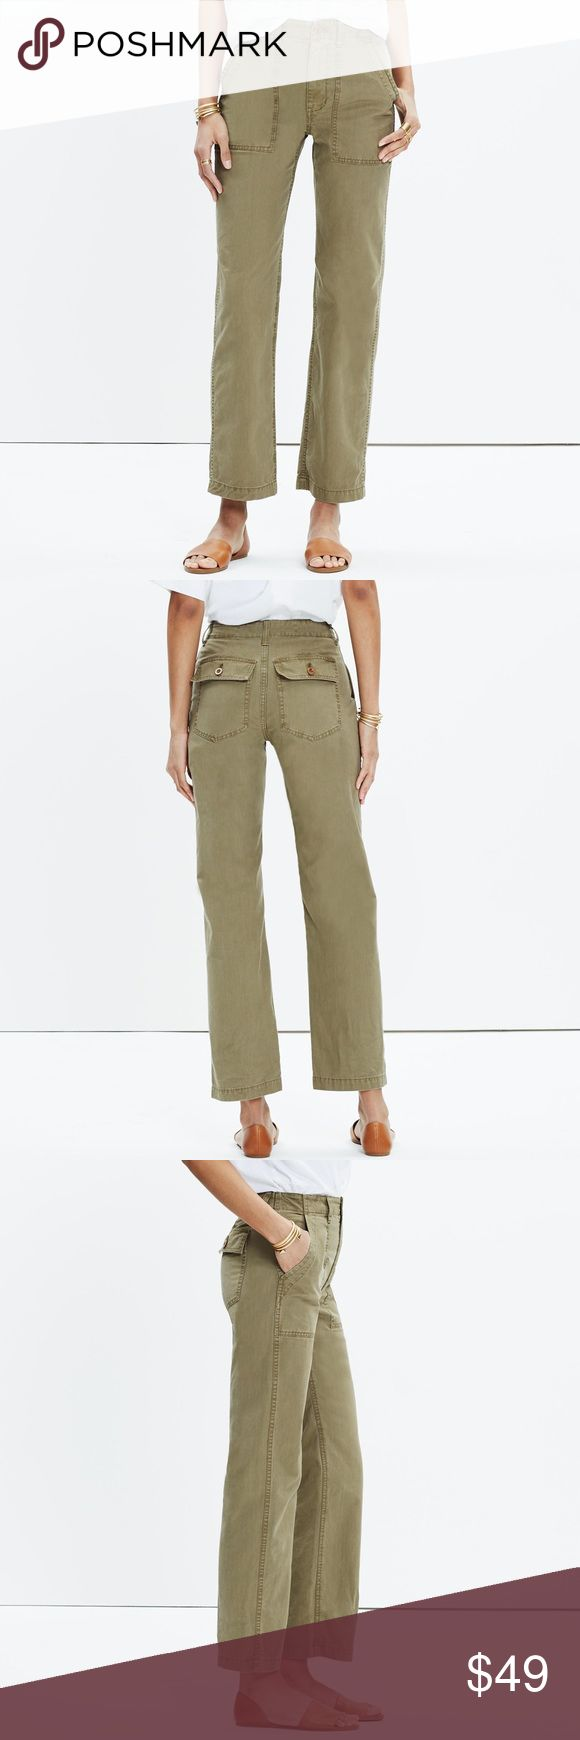 Madewell Ollie Pants Size 26 A fresh take on chinos with a vintage feel, these high-rise pants have a seriously good back view (it's kind of our design team's specialty). Specially garment-dyed for rich, dimensional color, these are the pair you wish you could find at the army surplus.    100% cotton. Sit slightly above hip, fitted through hip and thigh, with a straight leg. In excellent condition! Happy Poshing ladies!💁🏾✨ Madewell Pants